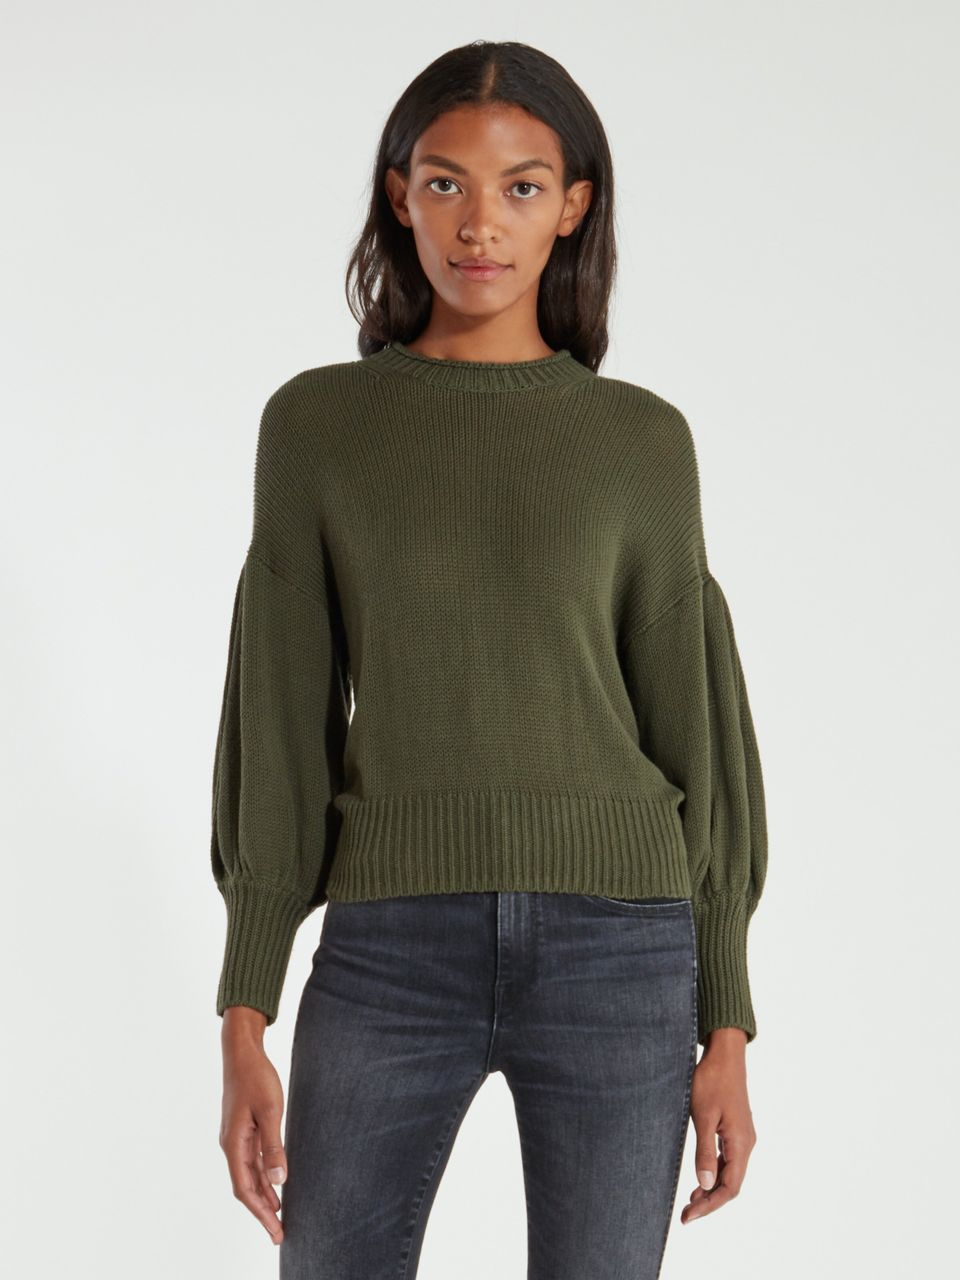 If You're A Nordstrom Fan, You Should Check Out This Verishop Sale 7